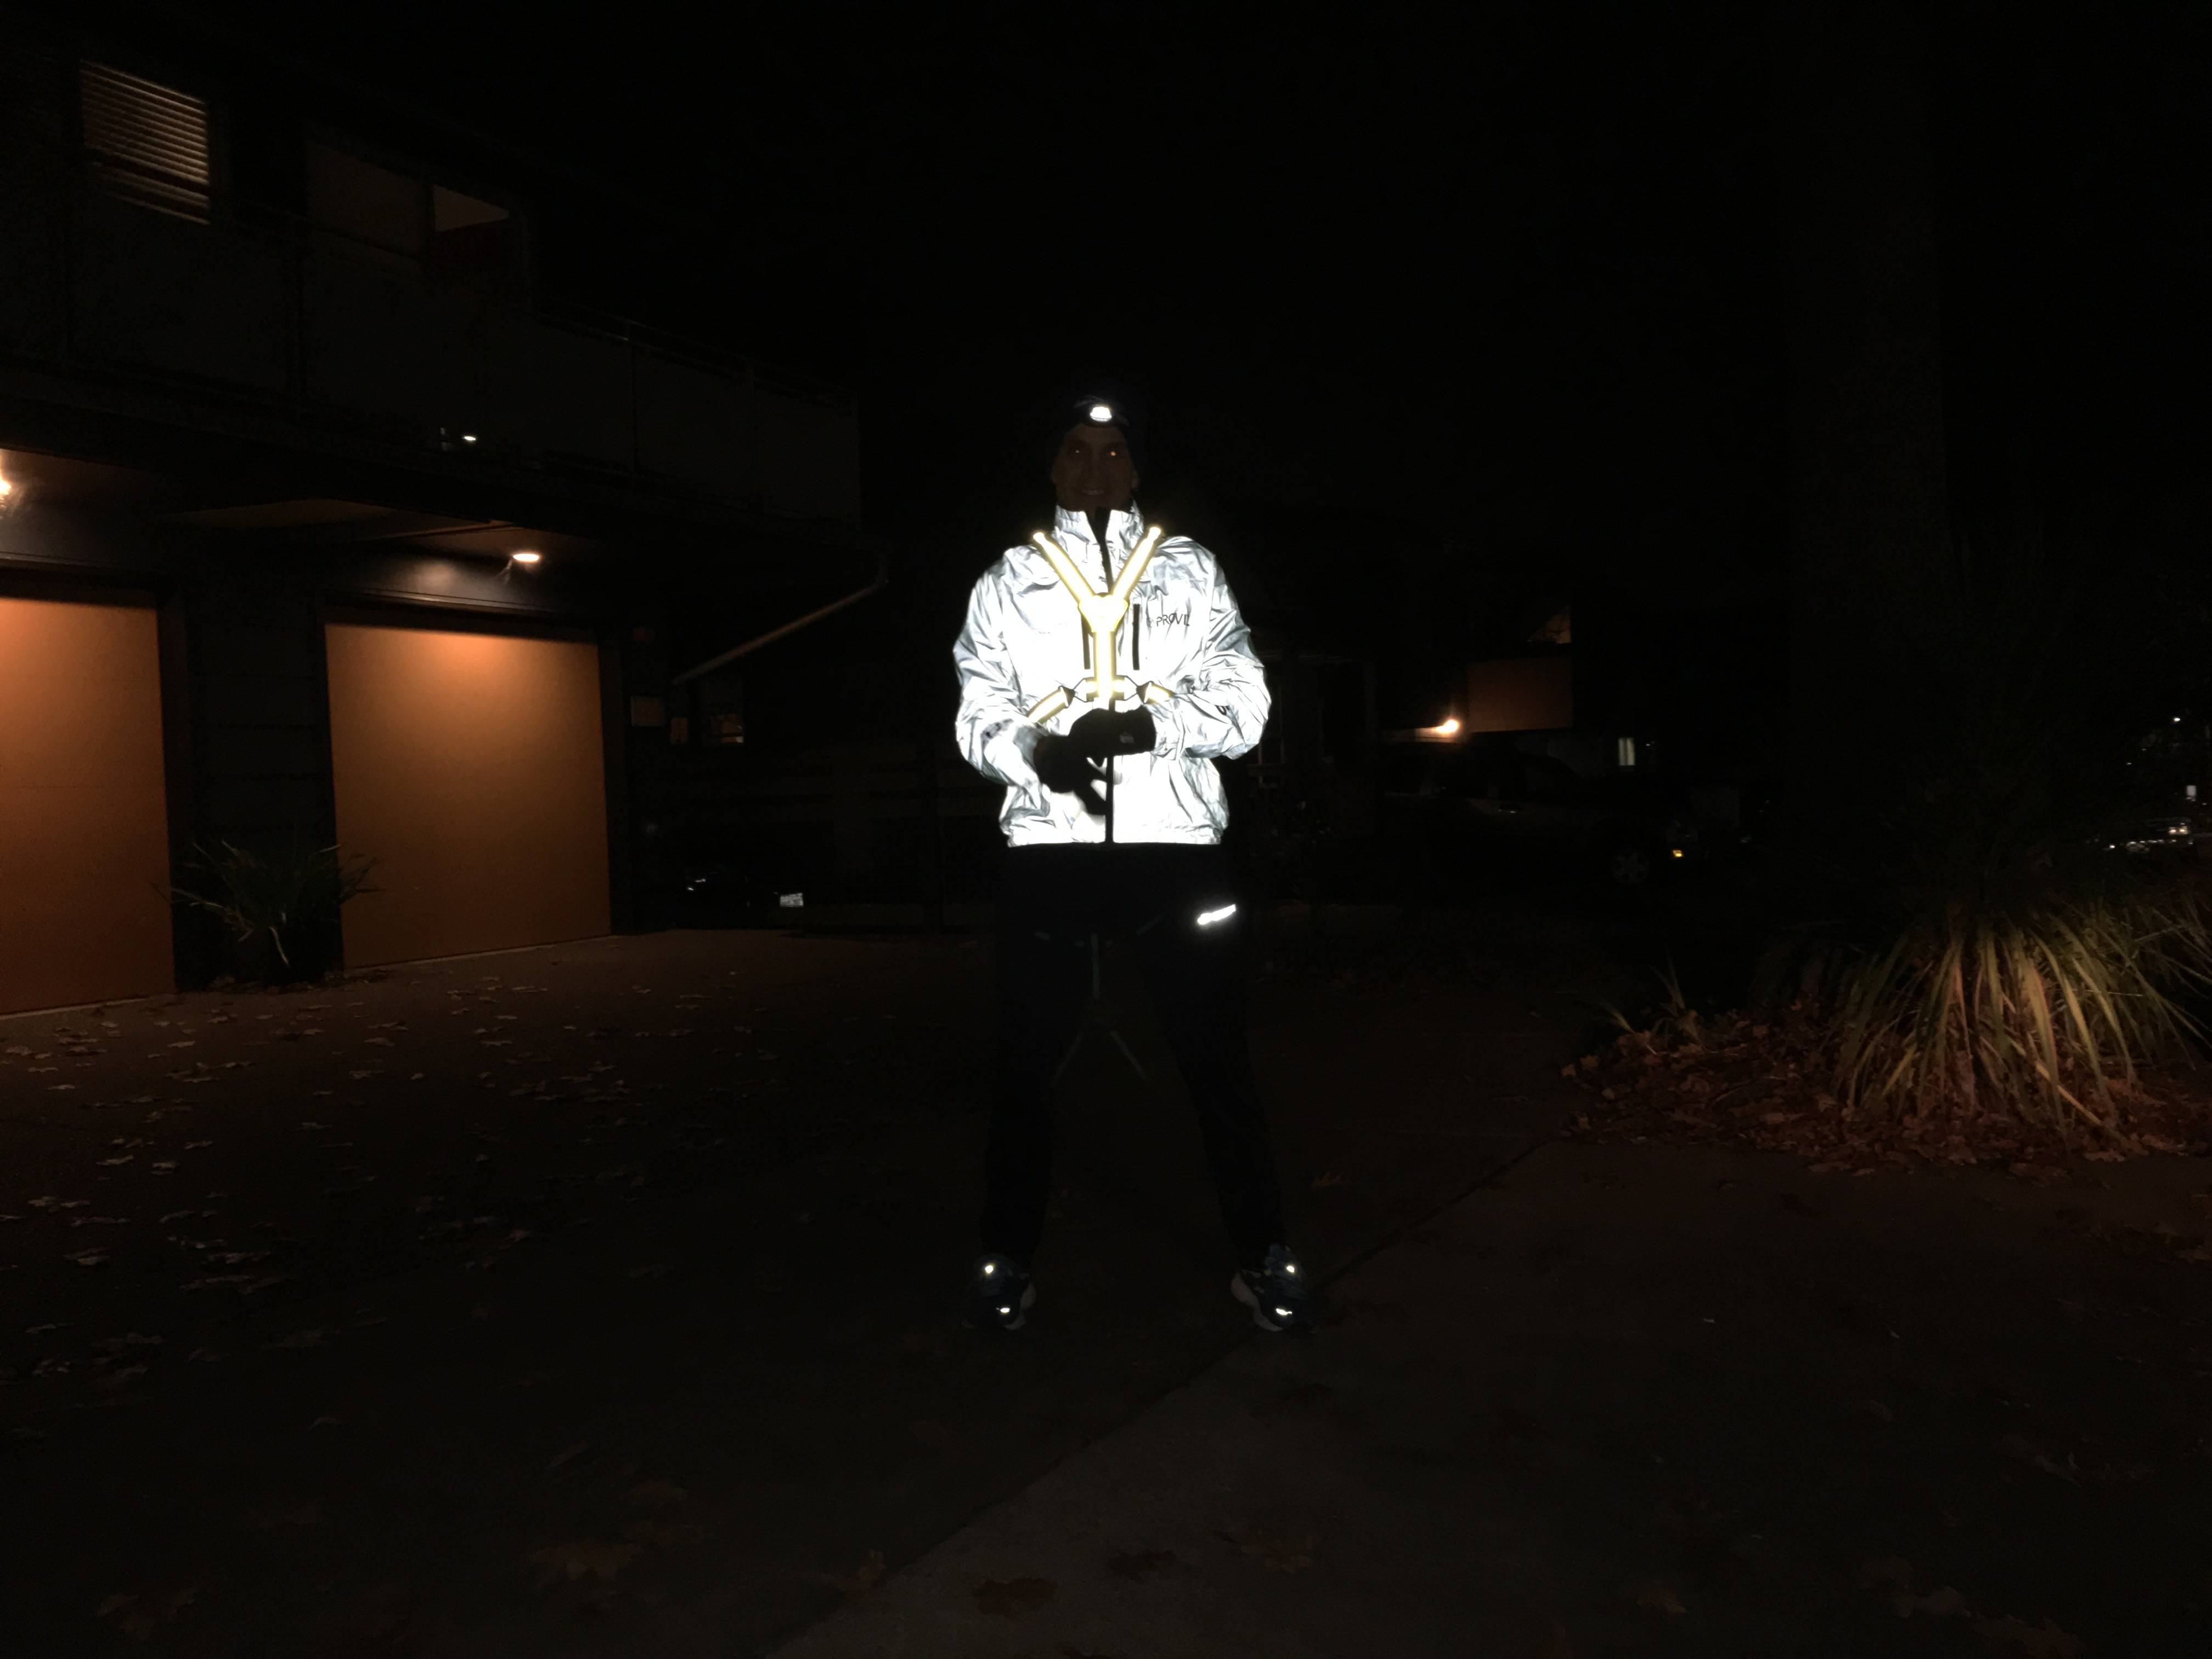 A Proviz jacket as illuminated by a camera flash. There is also an Amphipod Xinglet in the mix, but it gets drowned out by the Proviz' reflectivity.